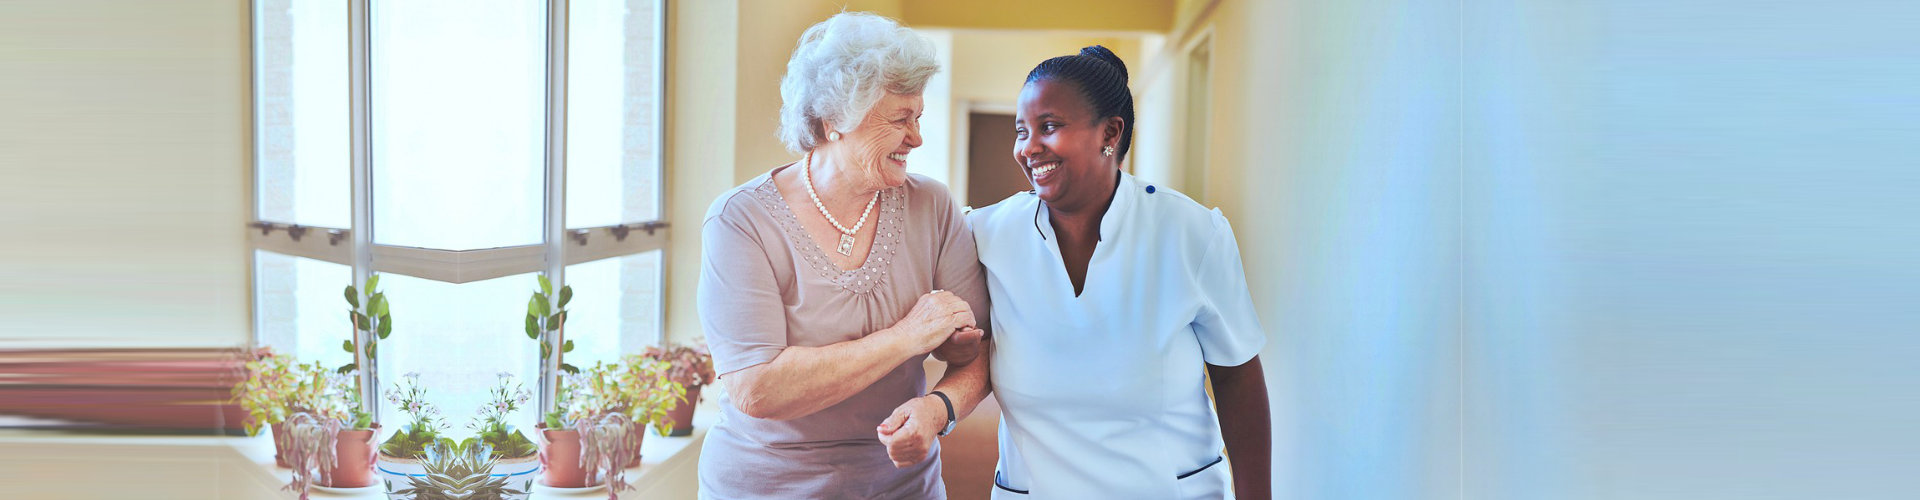 caregiver and senior woman having a conversation while walking at the hallway